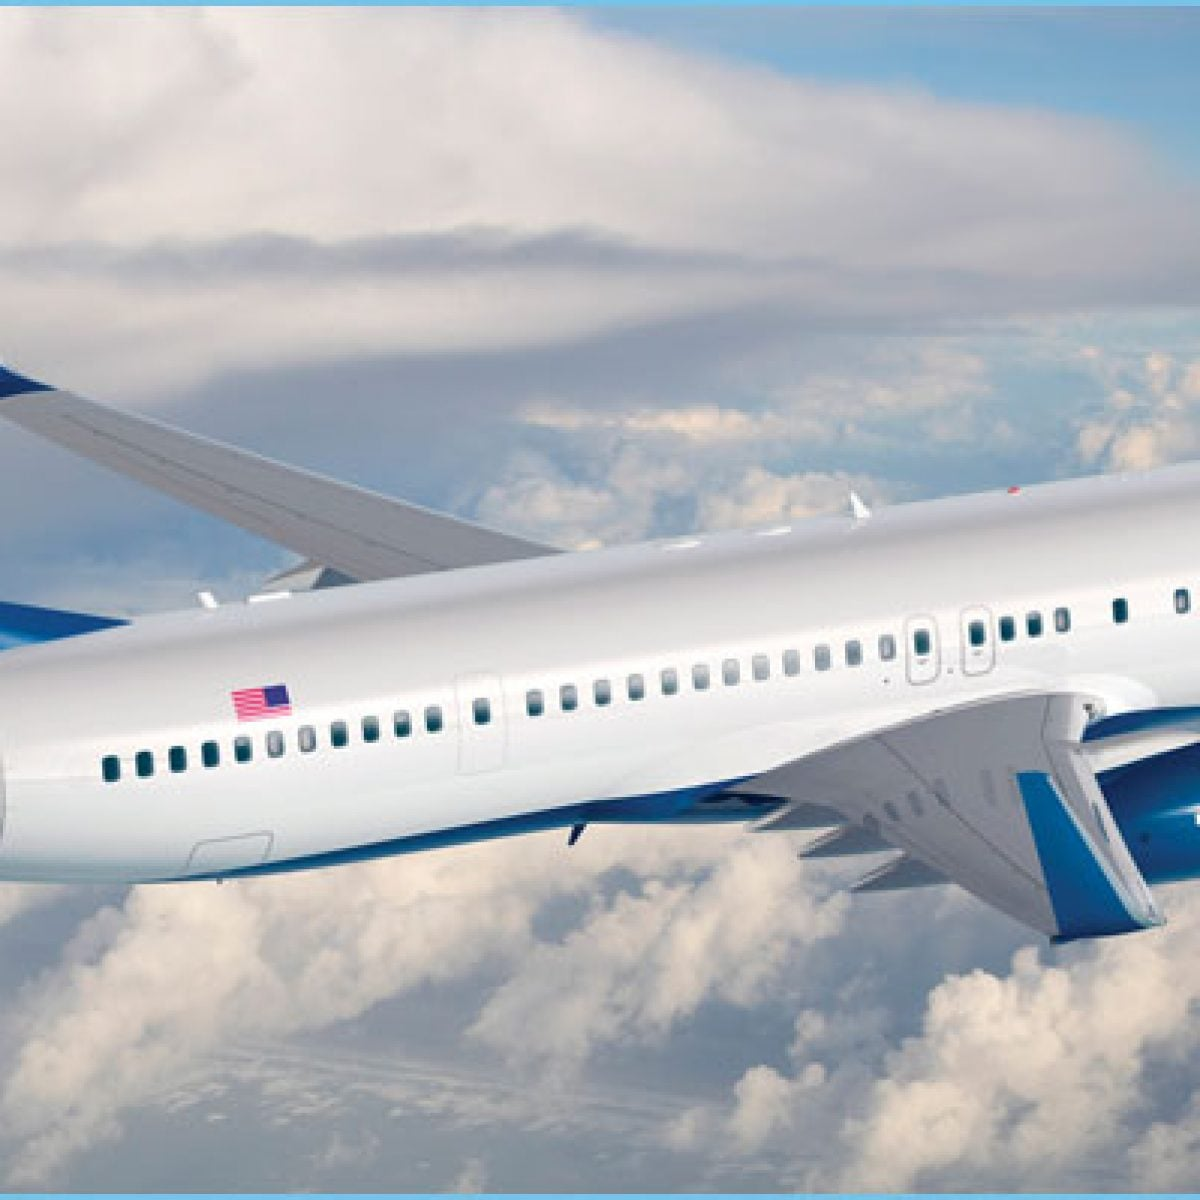 delta airlines executive summary Analysis on delta airline's strategy presented by: yawei luo econ 401 agnes scott college 1924 1928 huff daland dusters ce woolman merger.